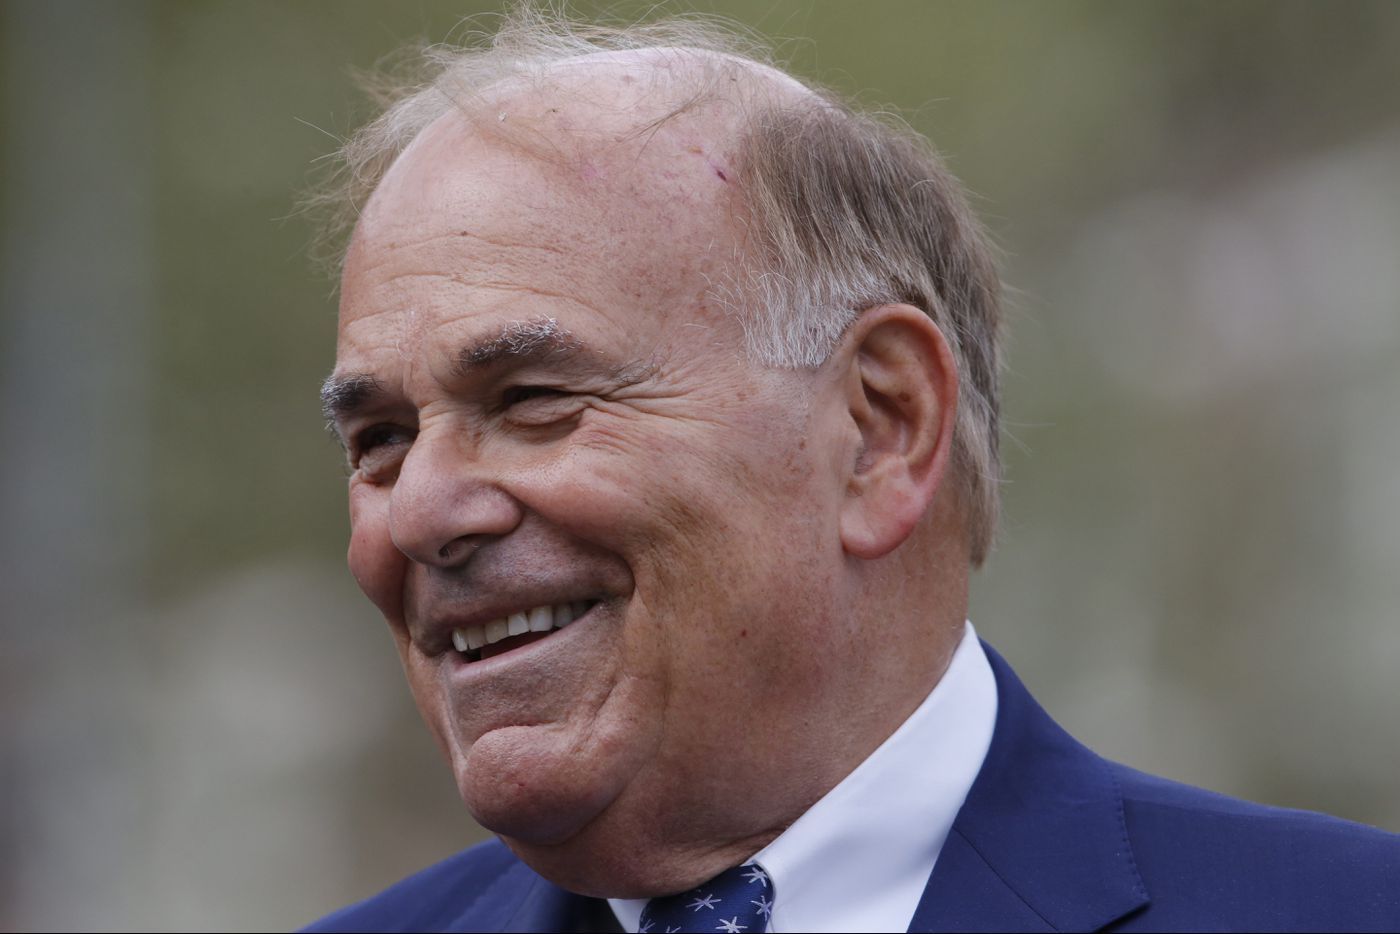 Rendell, Kenney, other fans react to Trump disinviting Eagles